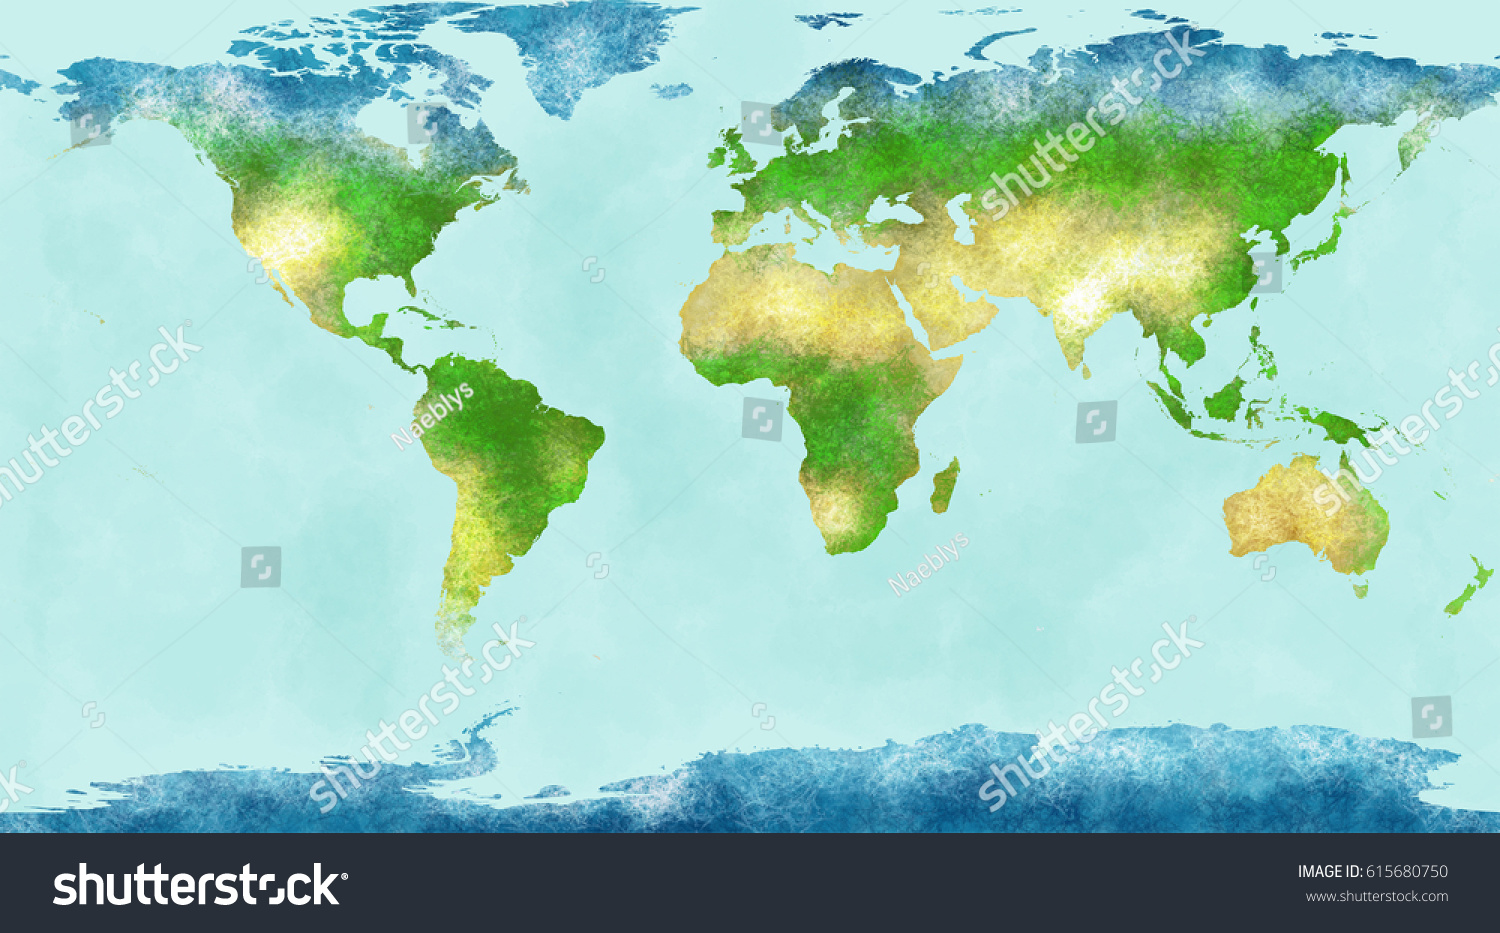 Highly Detailed Physical Map Of The World In Vector Format With All